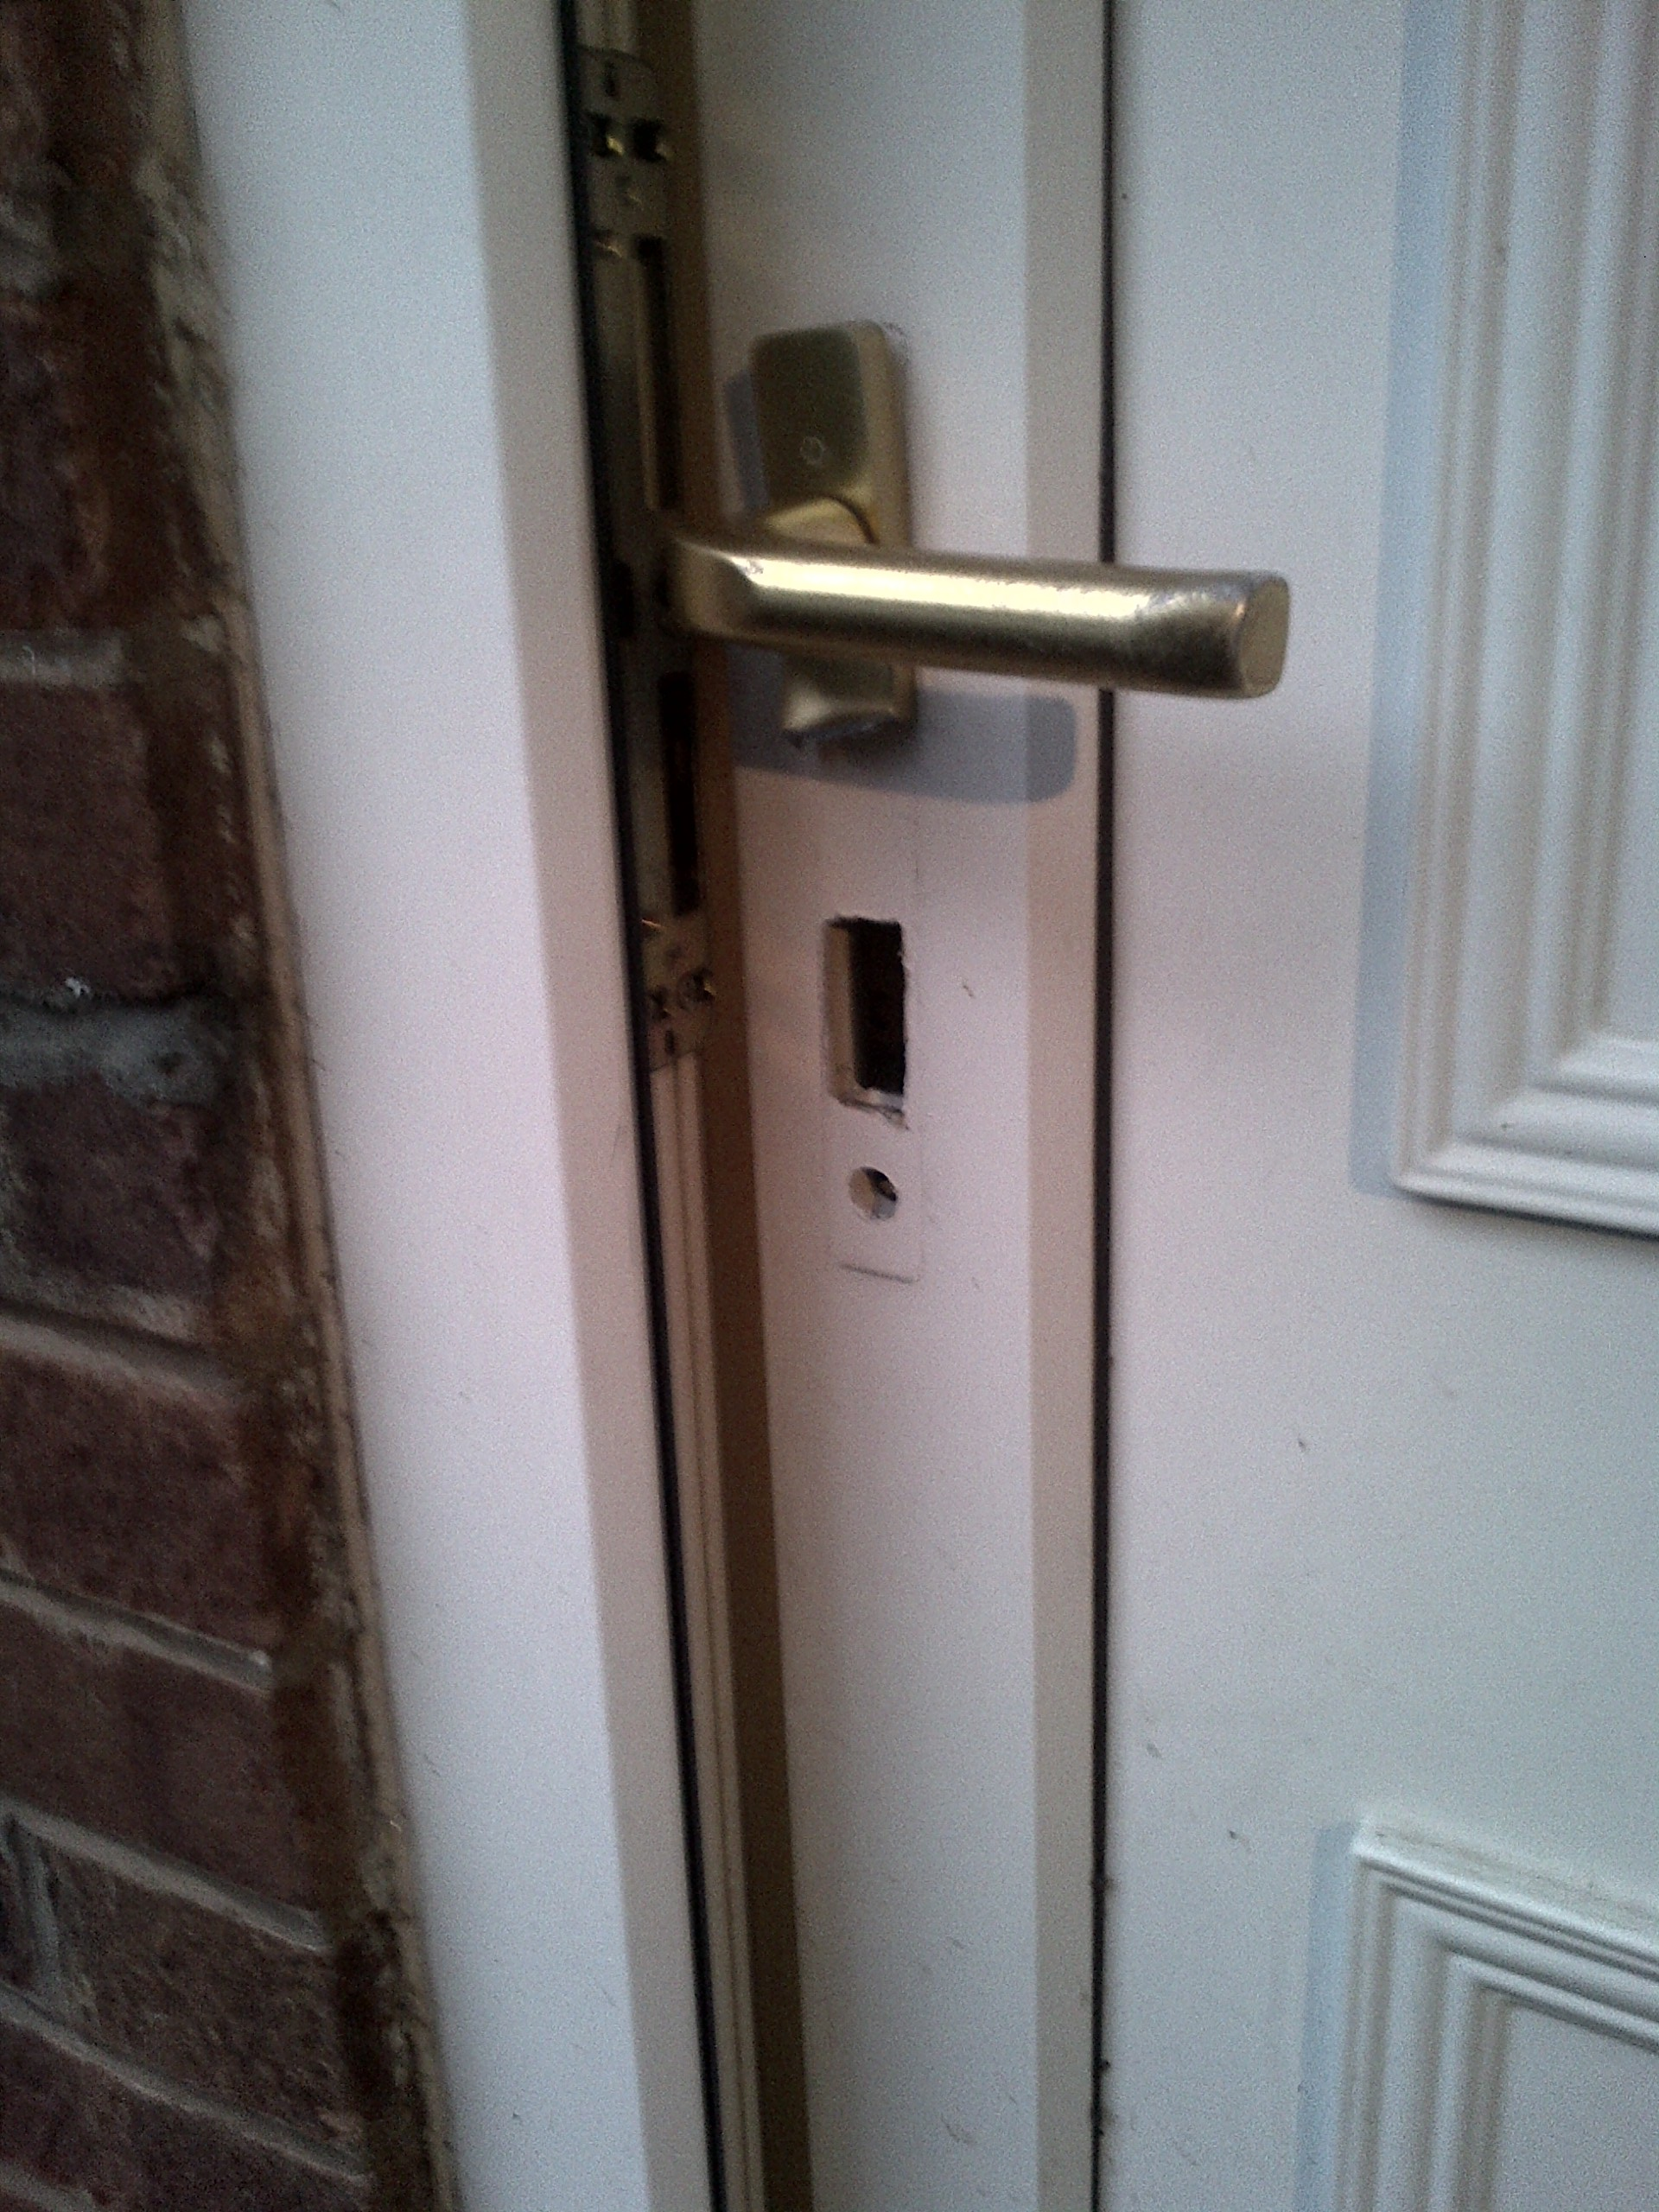 Secure Home Locksmiths - Lock Snapping Incident in Halesowen